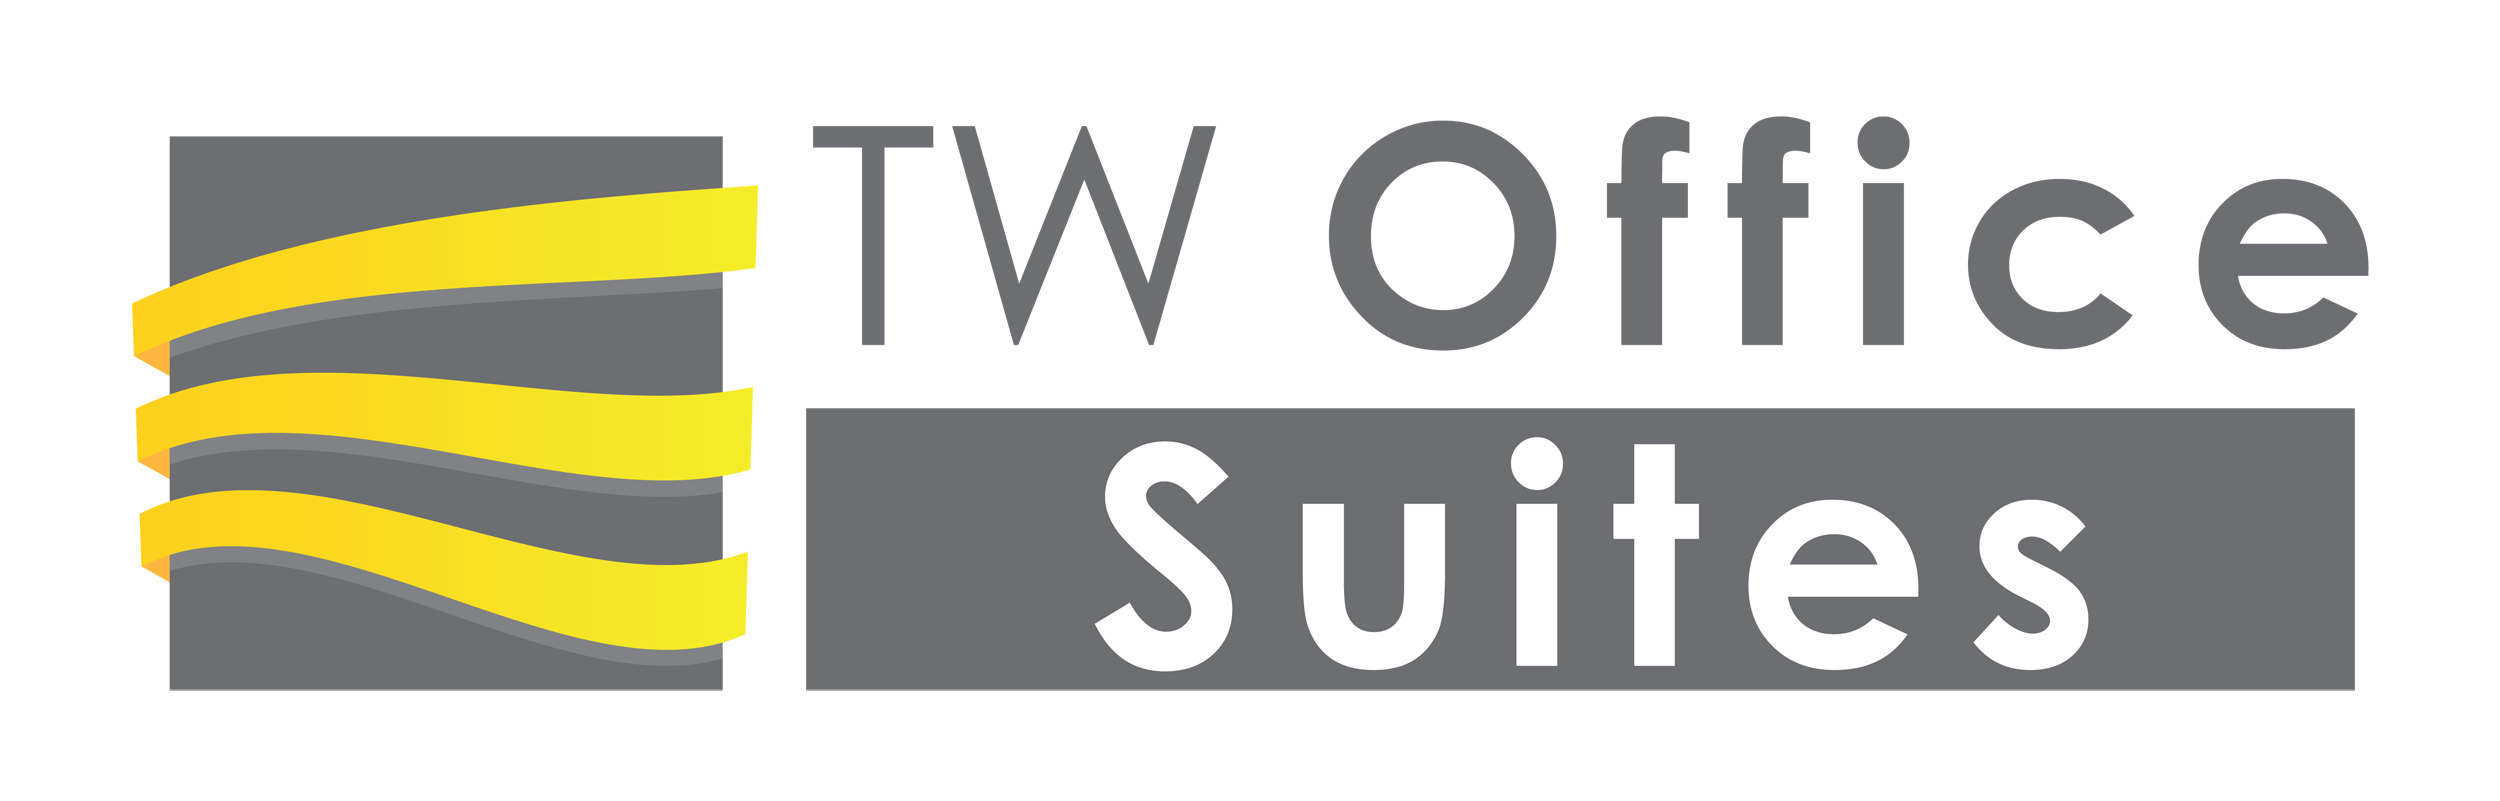 TW Office Suites